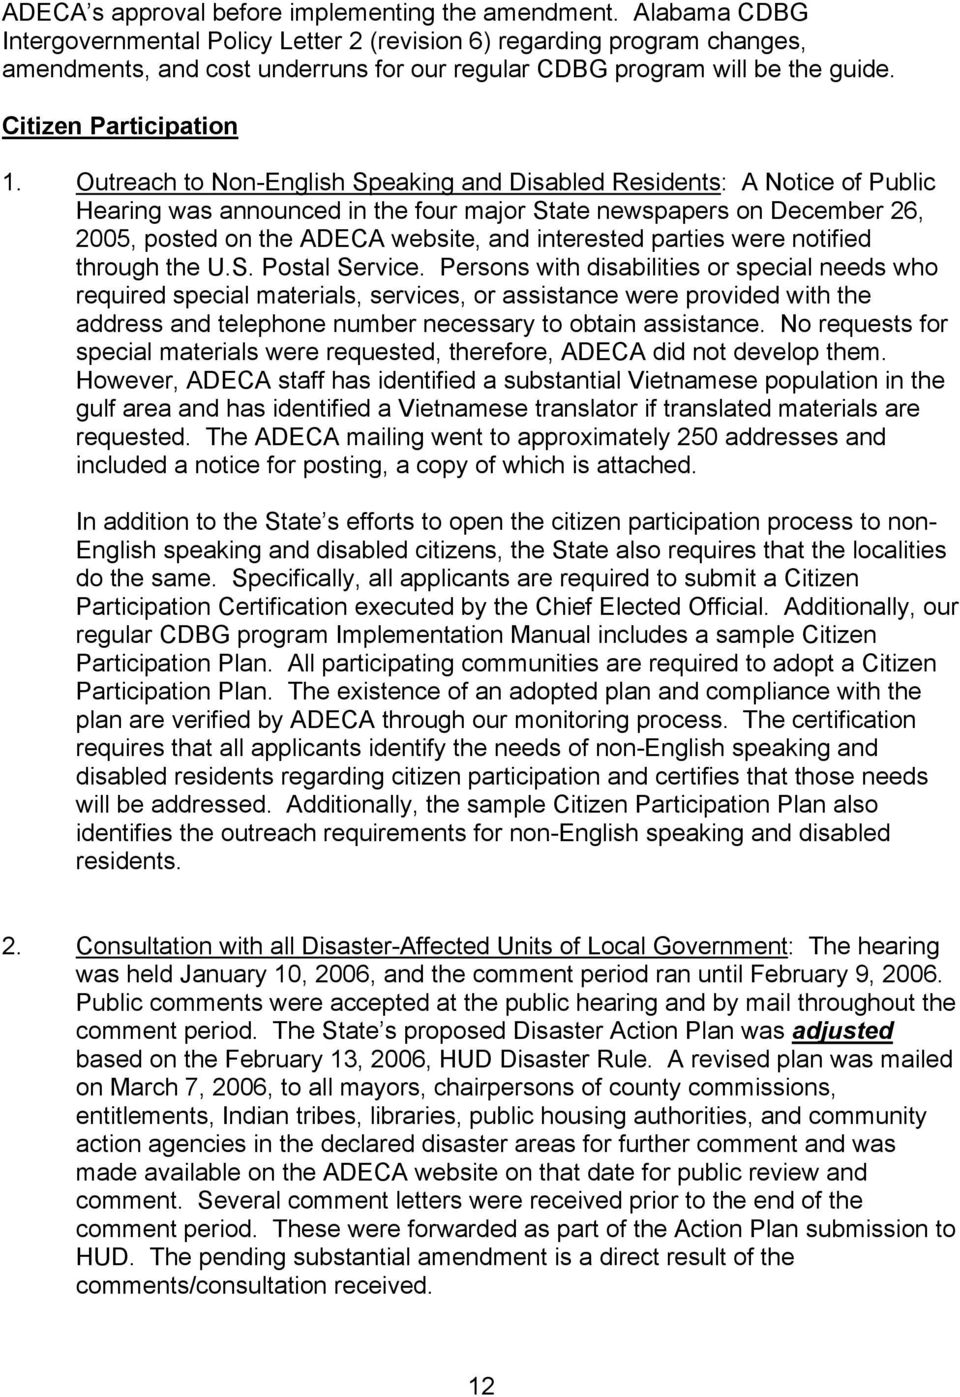 Outreach to Non-English Speaking and Disabled Residents: A Notice of Public Hearing was announced in the four major State newspapers on December 26, 2005, posted on the ADECA website, and interested